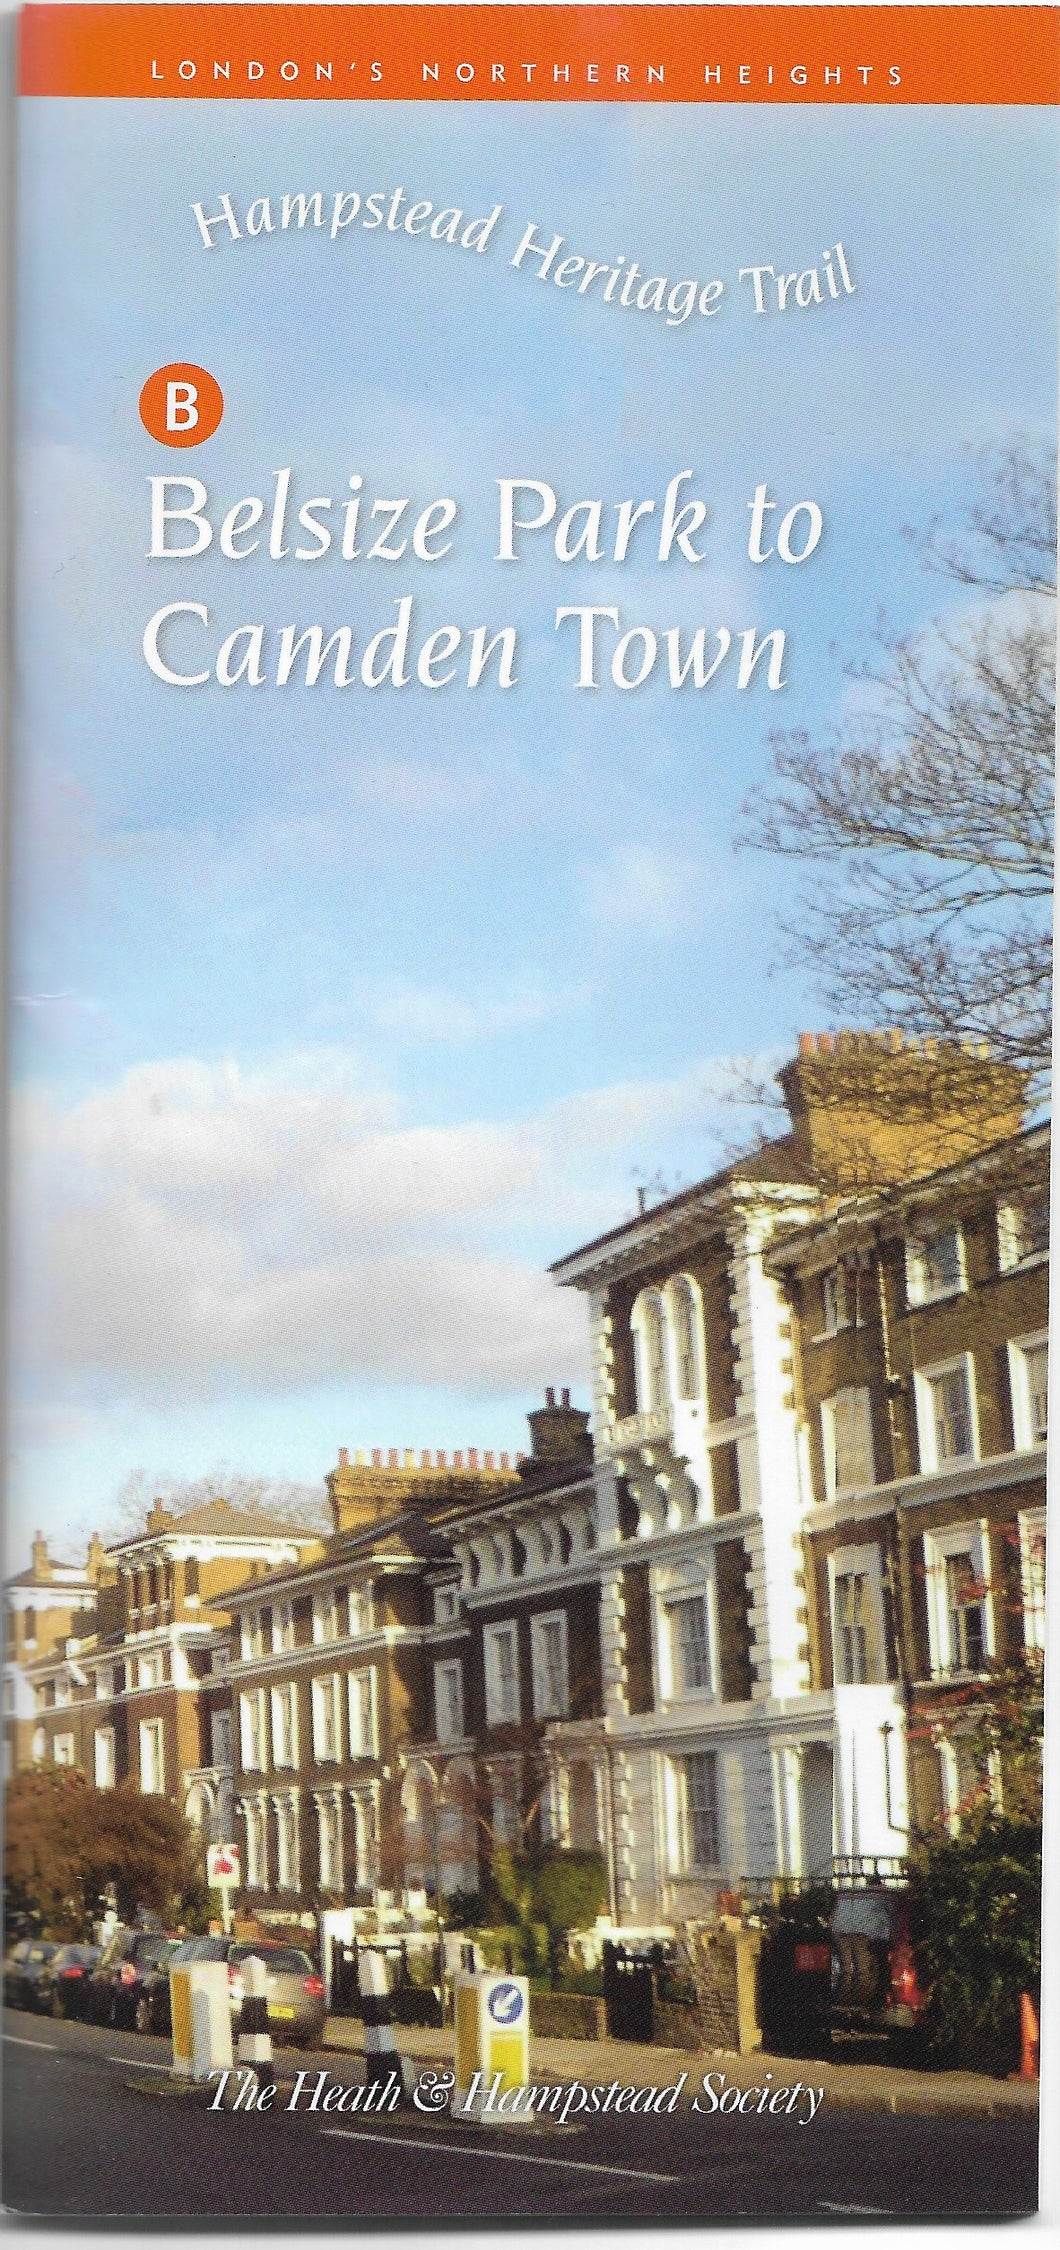 Guide - (B) Belsize Park to Camden Town